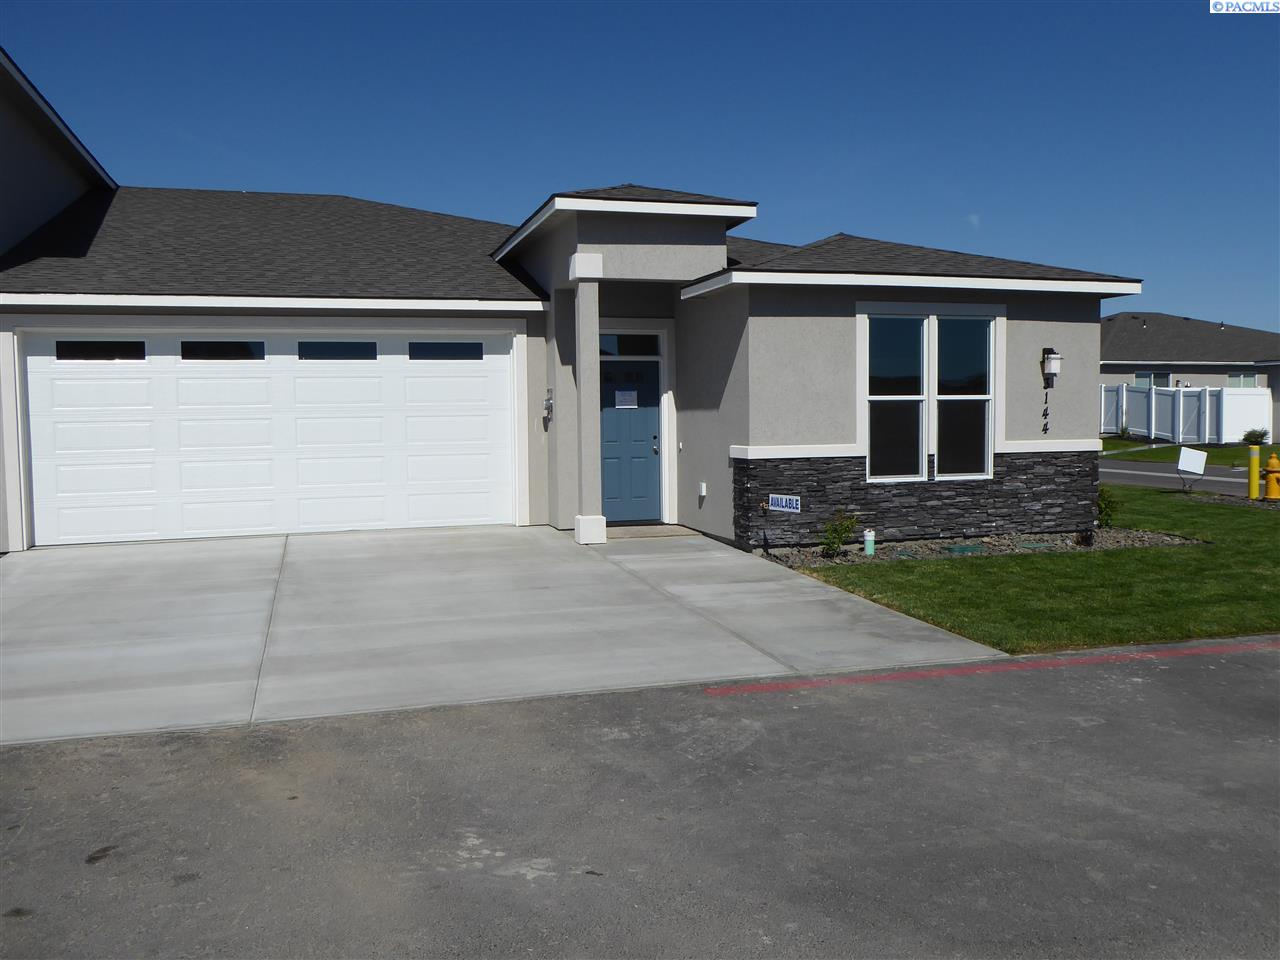 Single Family Homes for Sale at 3144 Carefree Loop West Richland, Washington 99353 United States